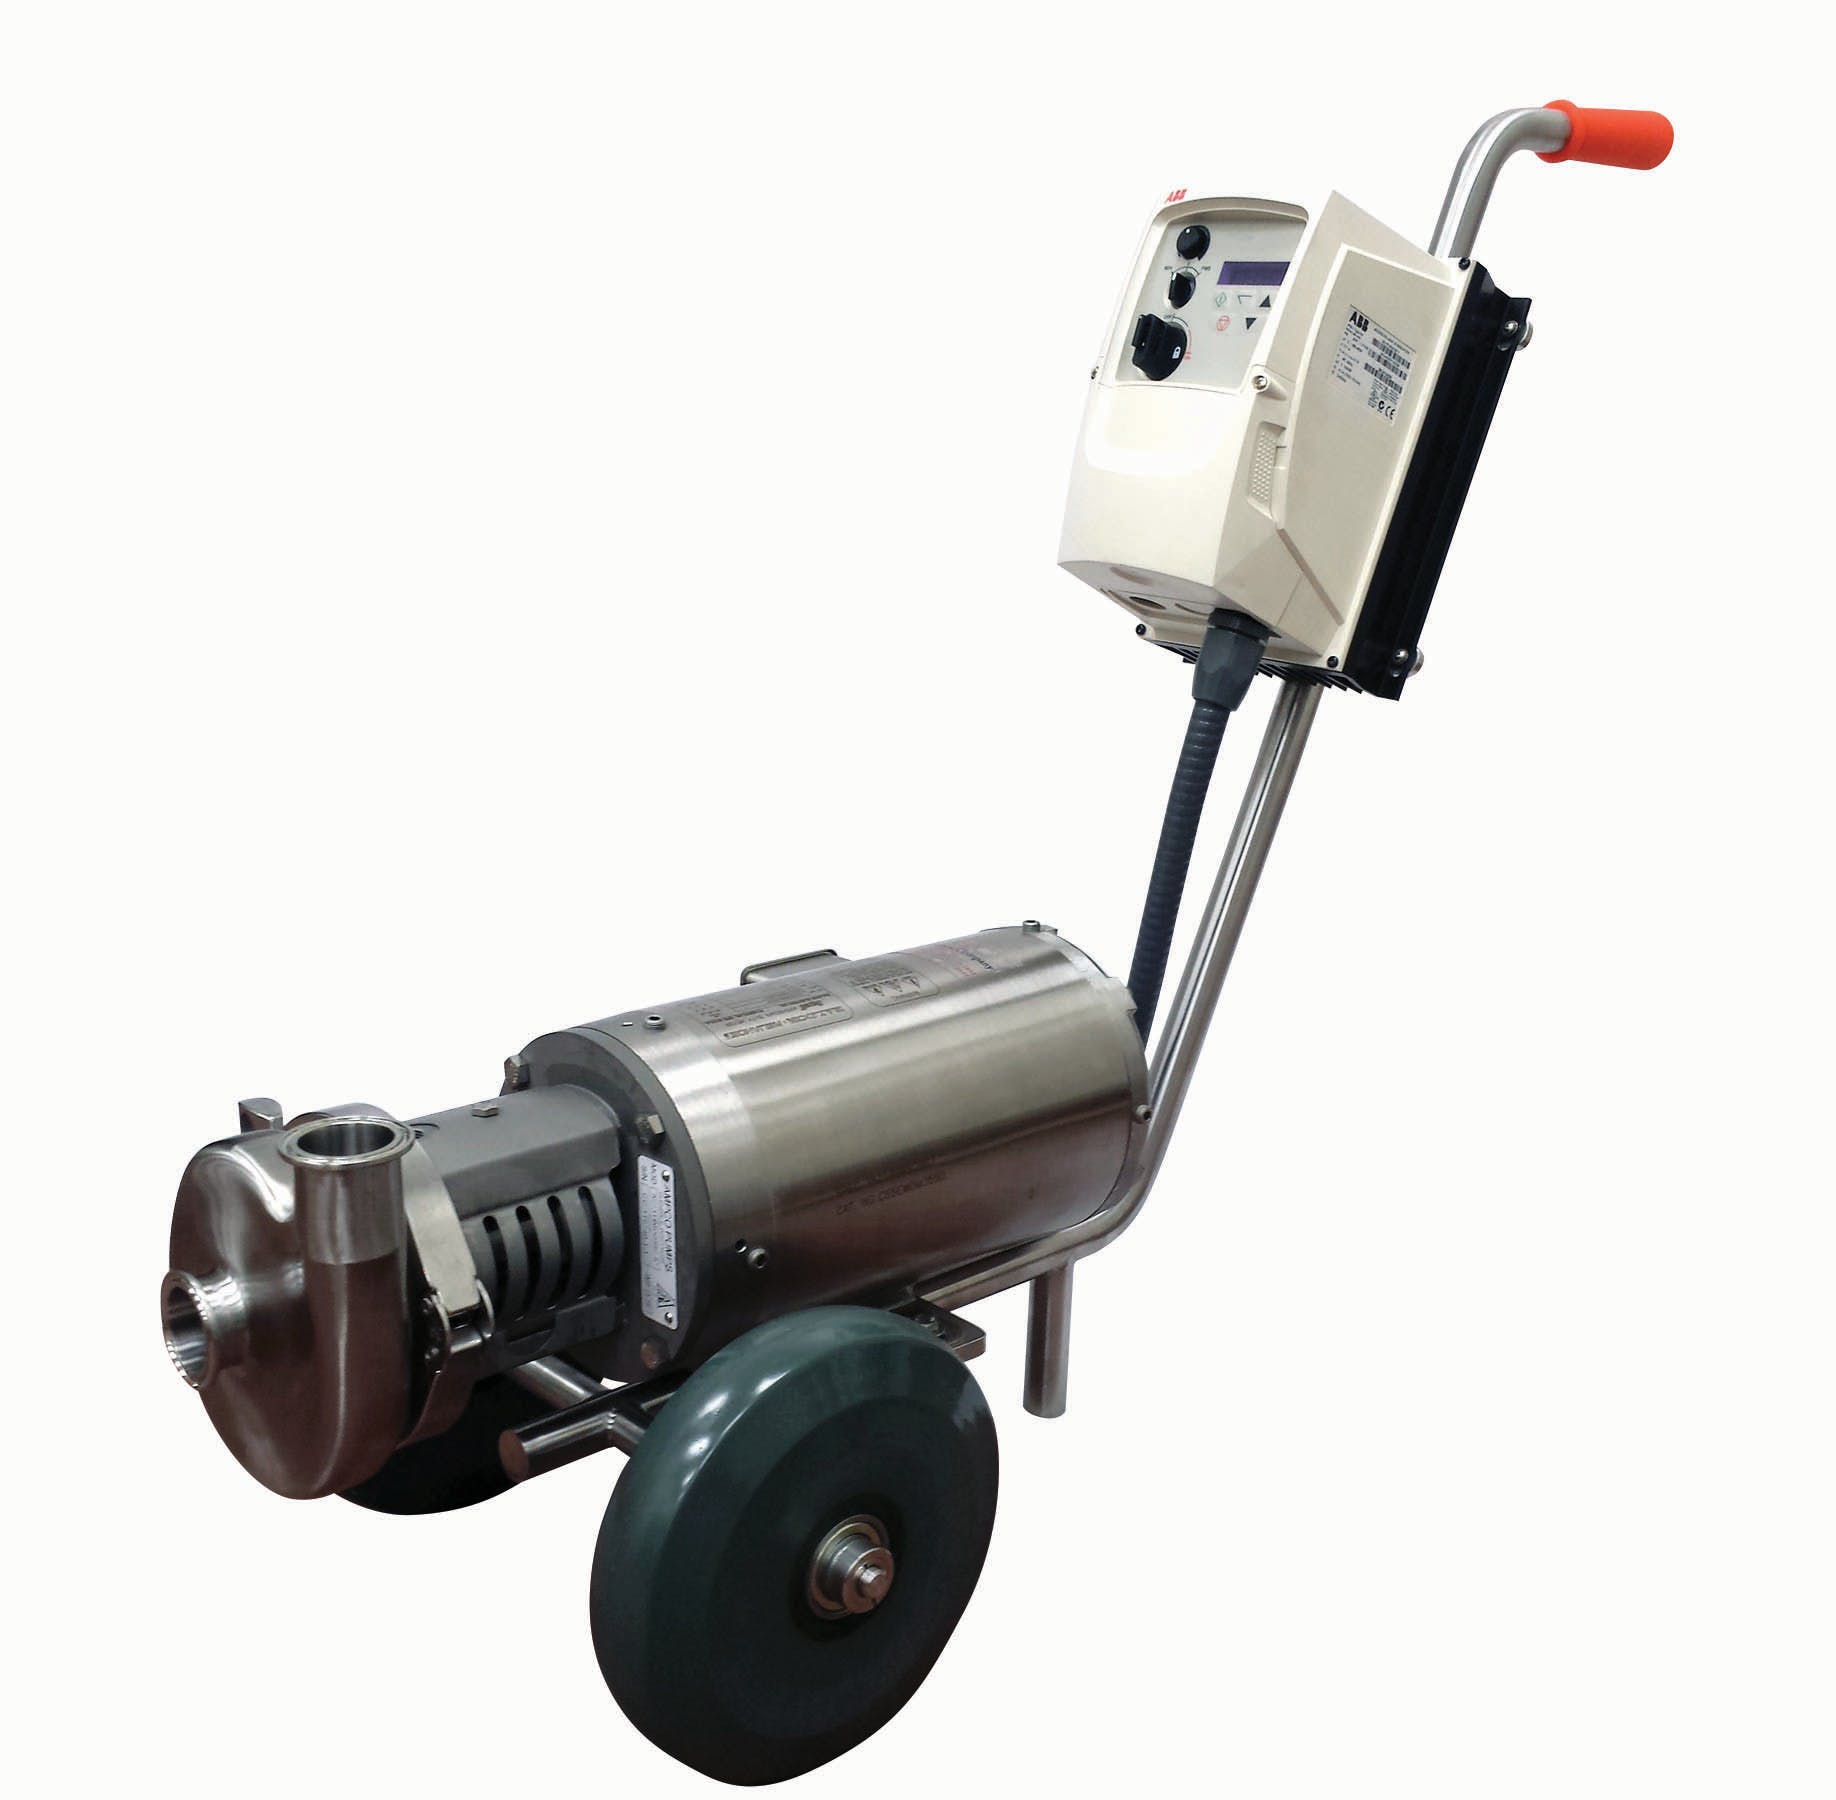 Beer and transfer cart  Pump cart sold by Ampco Pumps Co.